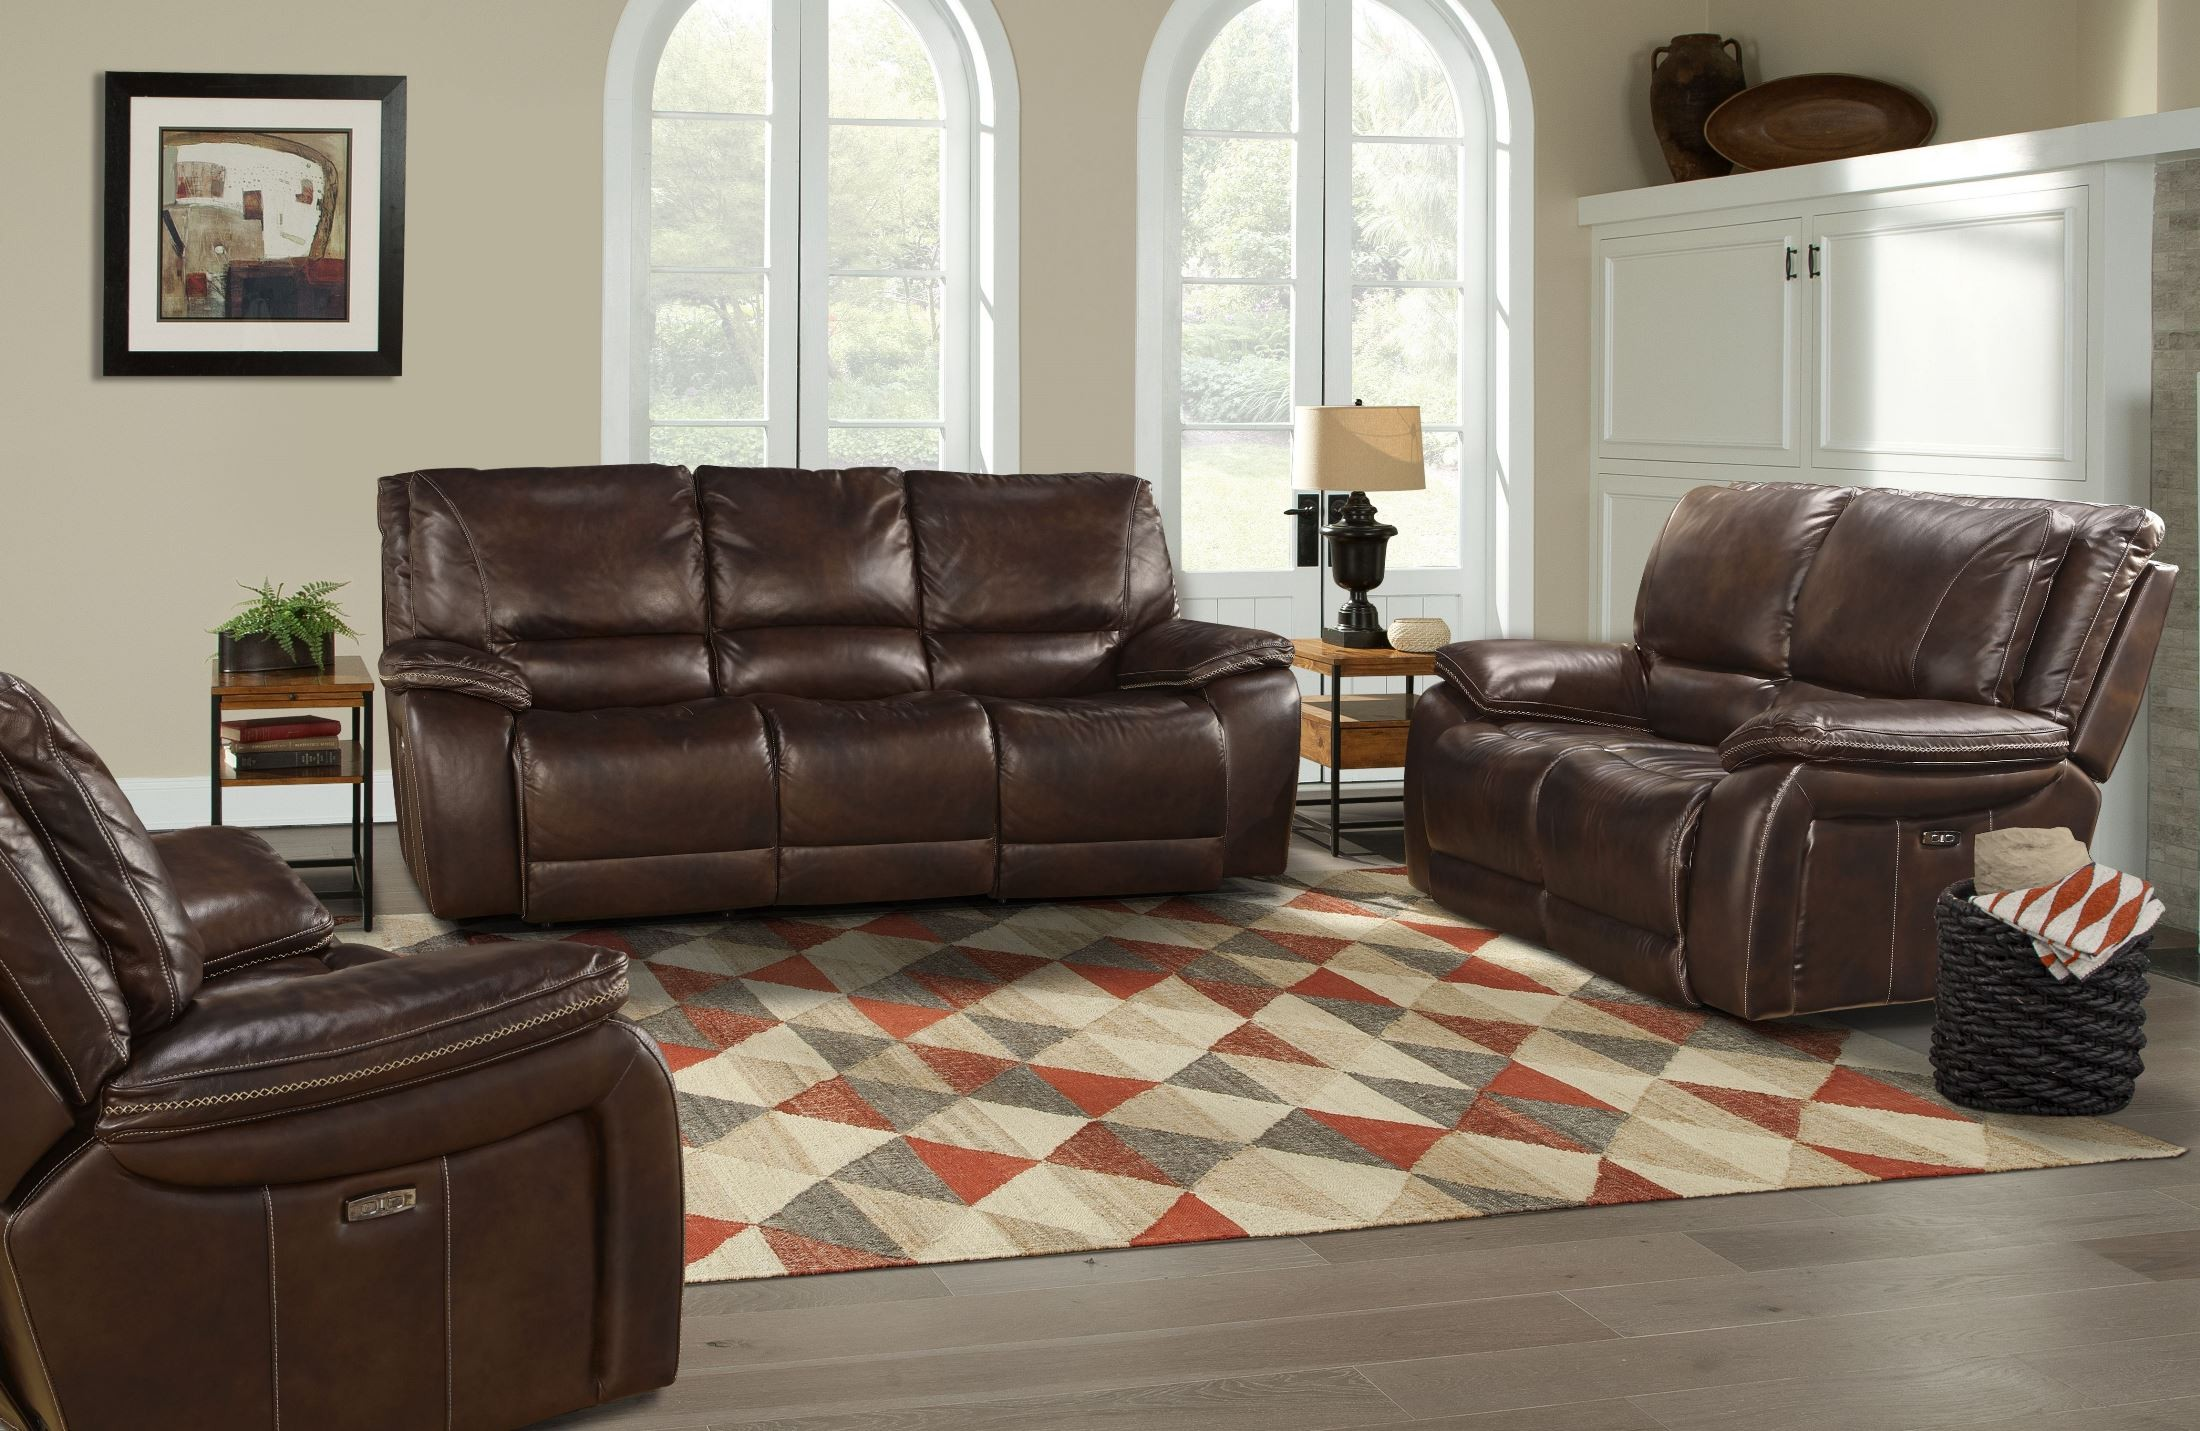 Vail Burnt Sienna Leather Dual Power Reclining Living Room